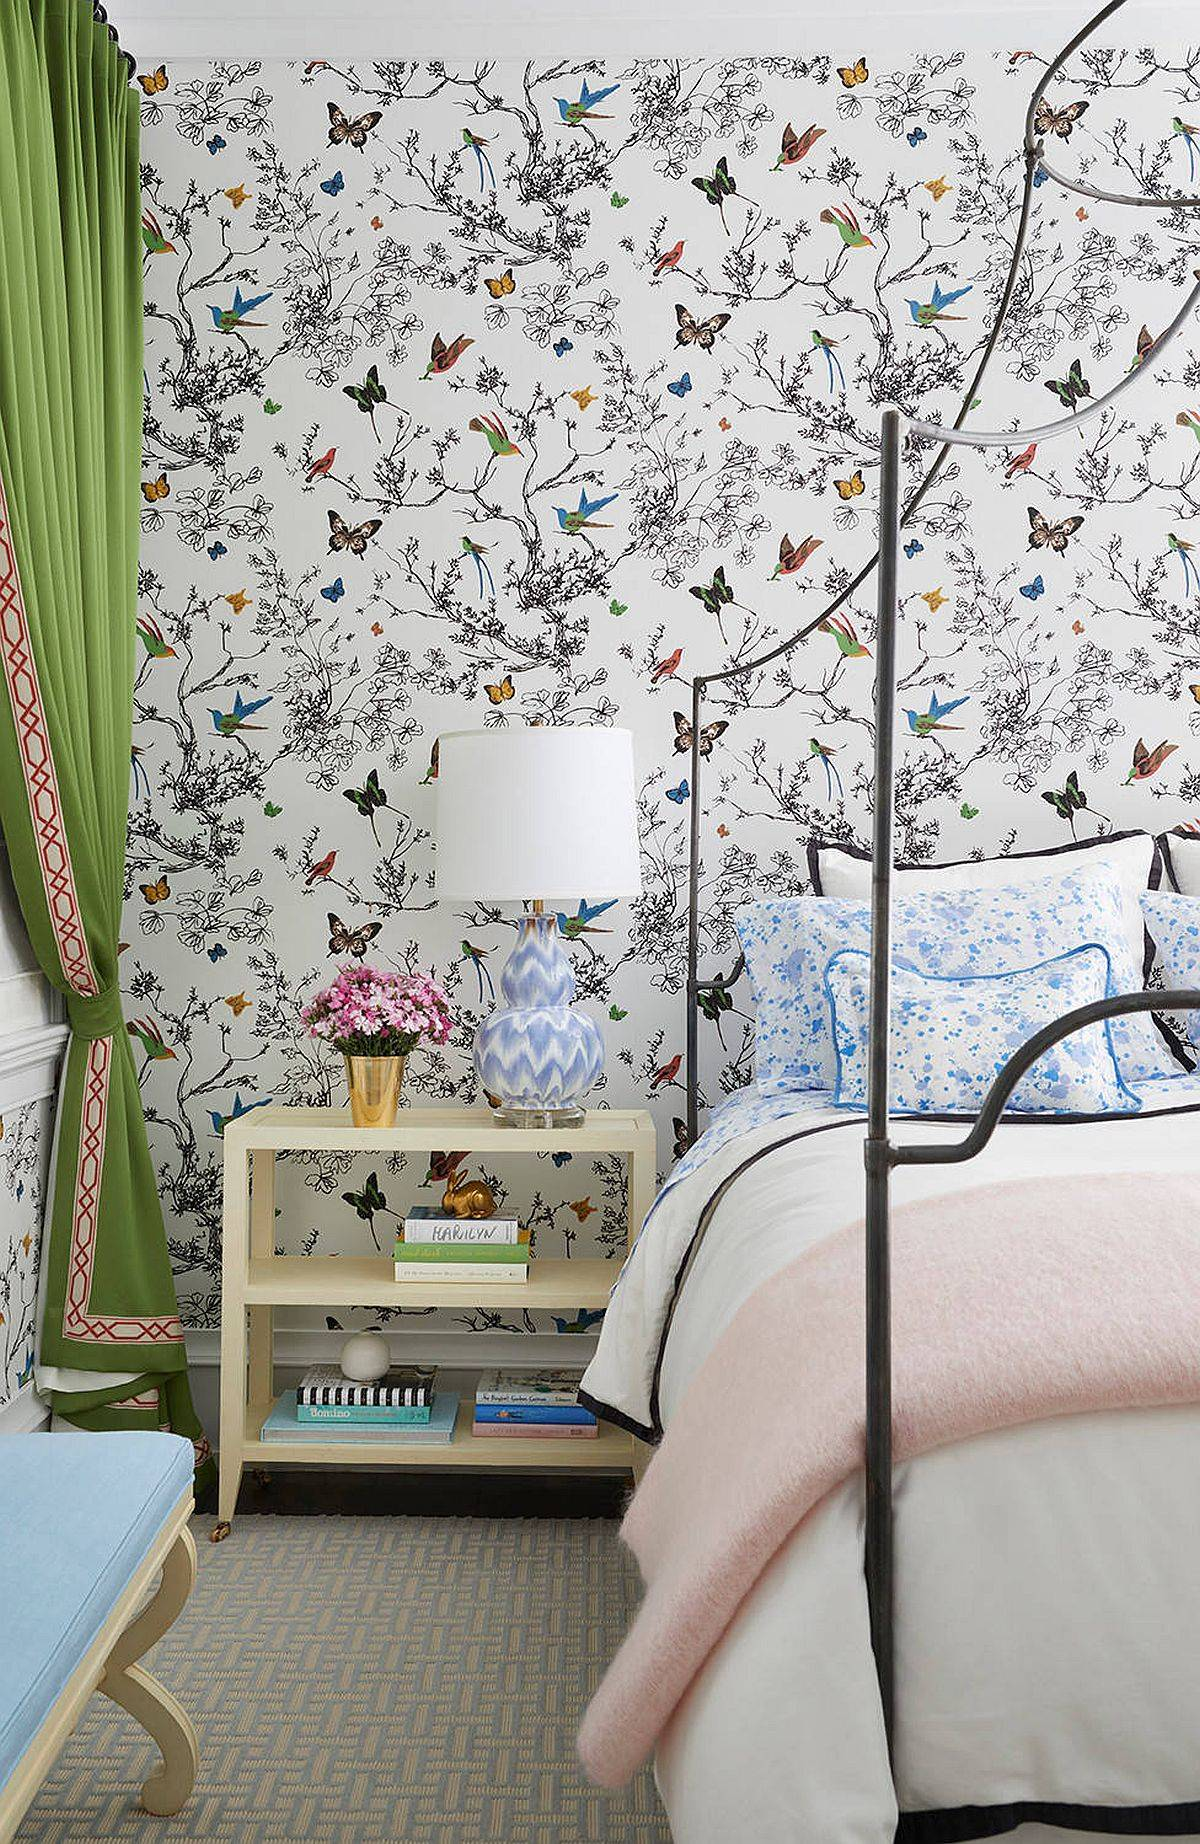 Gorgeous-Birds-and-Butterflies-wallpaper-is-absolutely-perfect-for-the-contemporary-bedroom-with-a-fresh-summer-vibe-91124